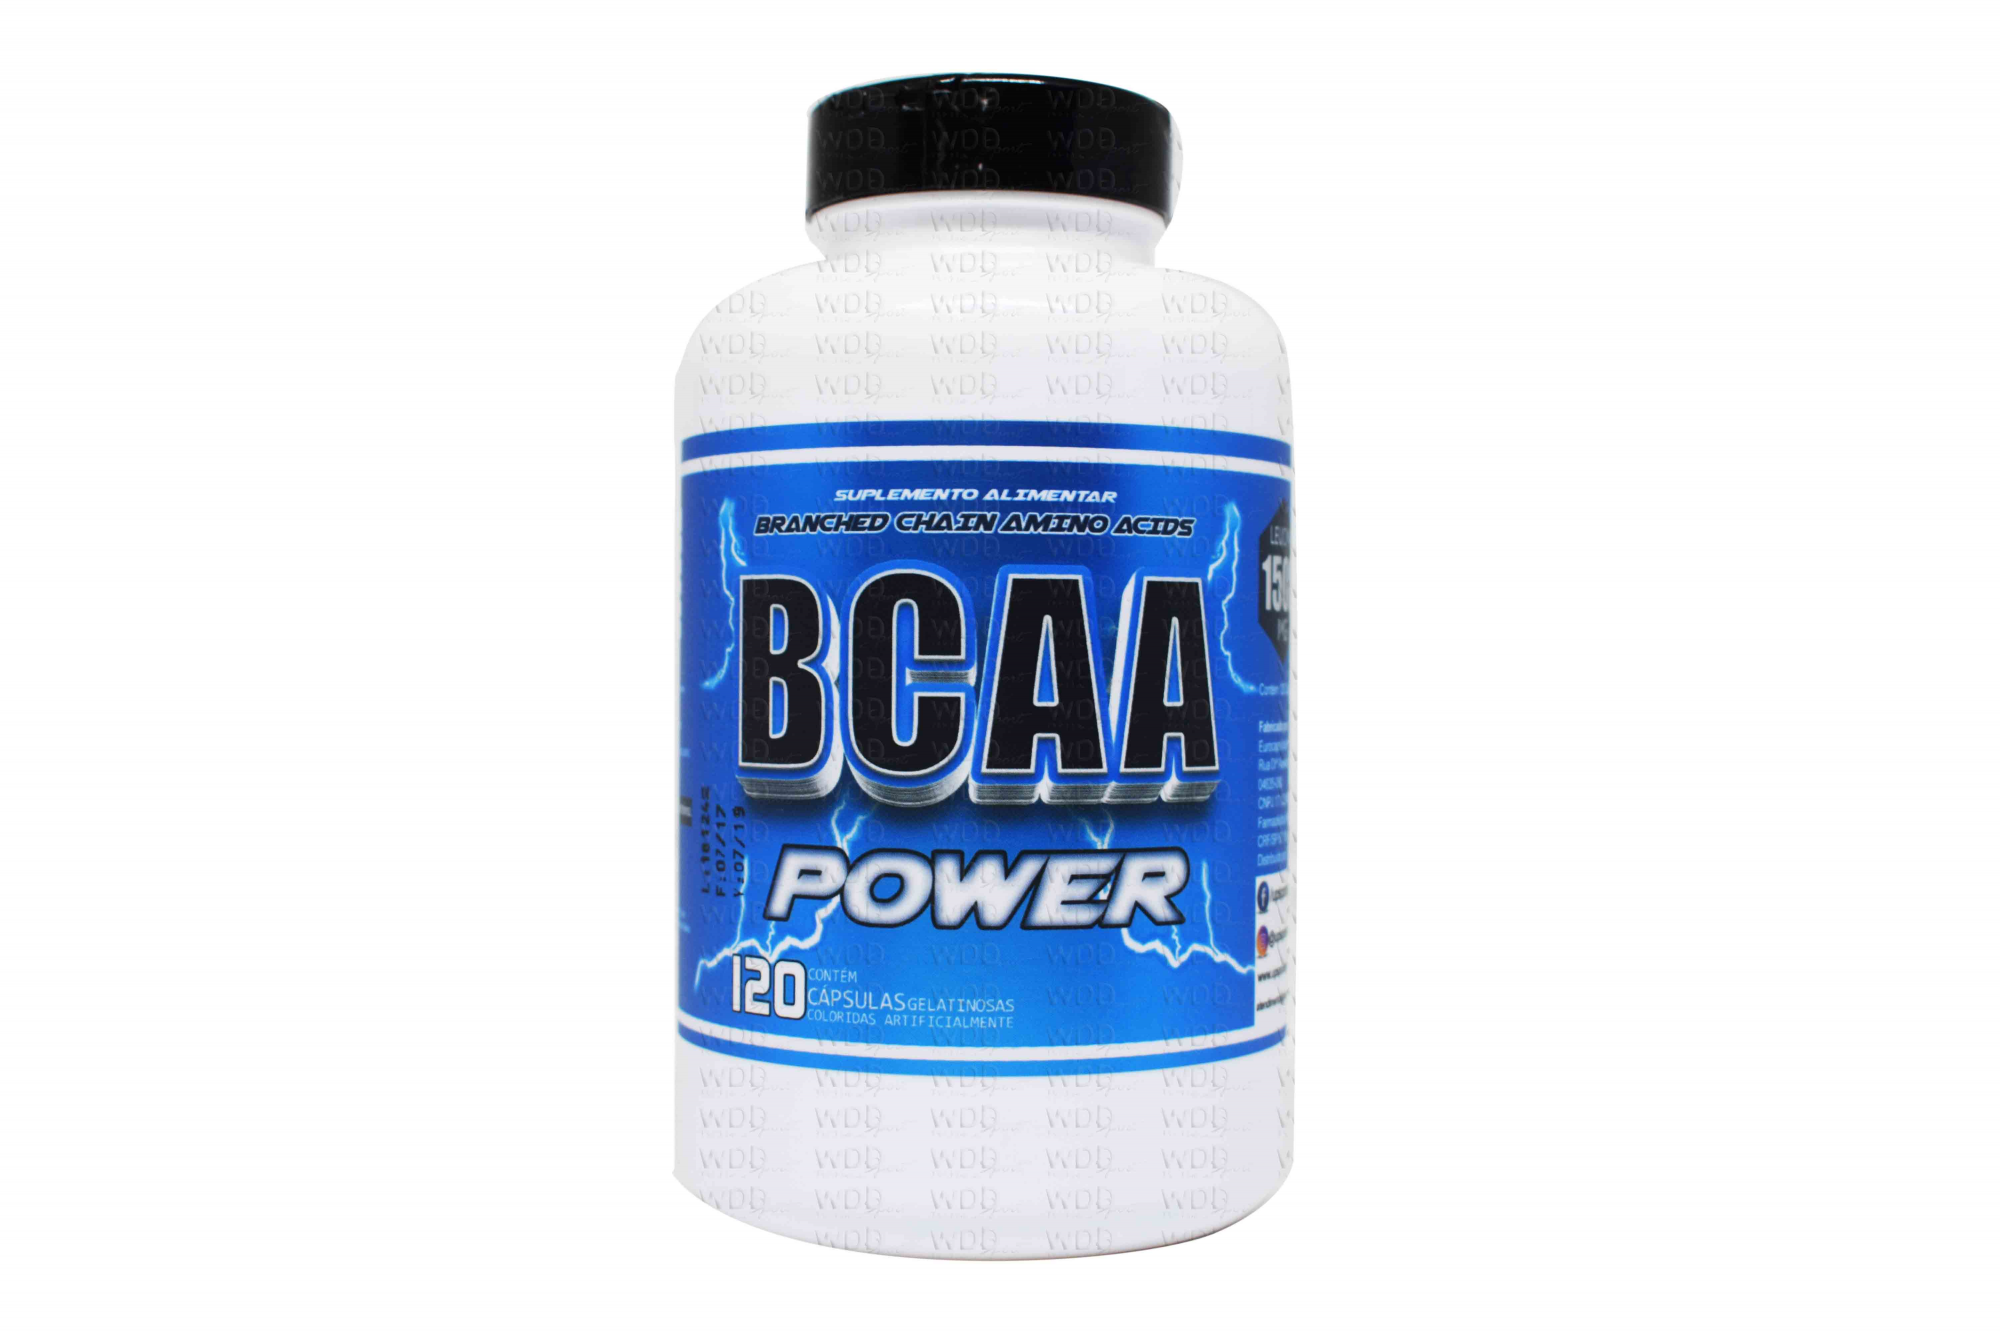 BCAA Power 120 caps Up Sports Nutrition